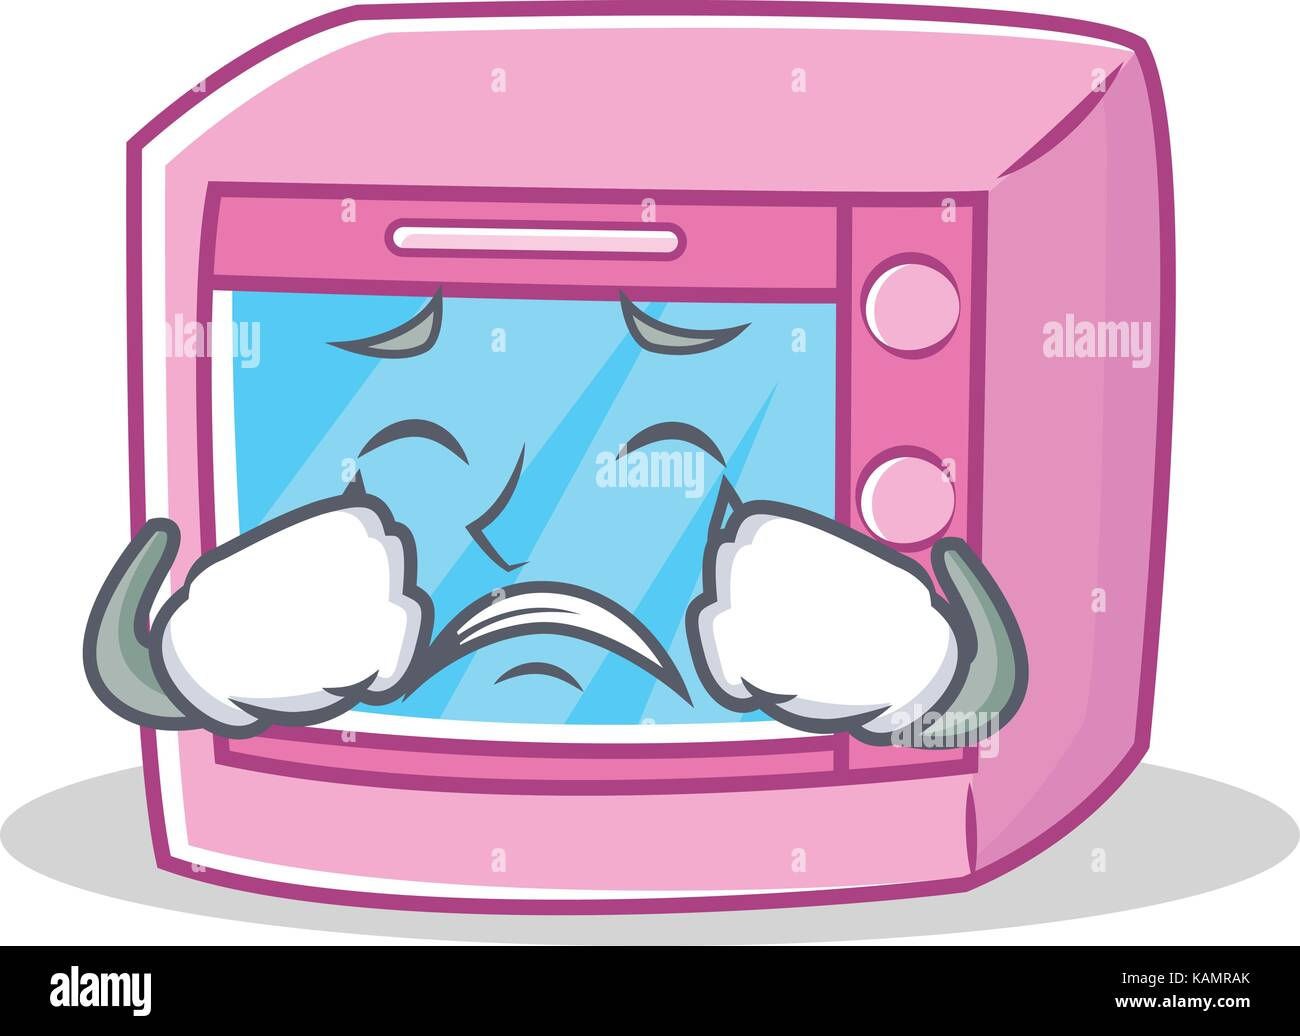 crying oven microwave character cartoon stock vector art